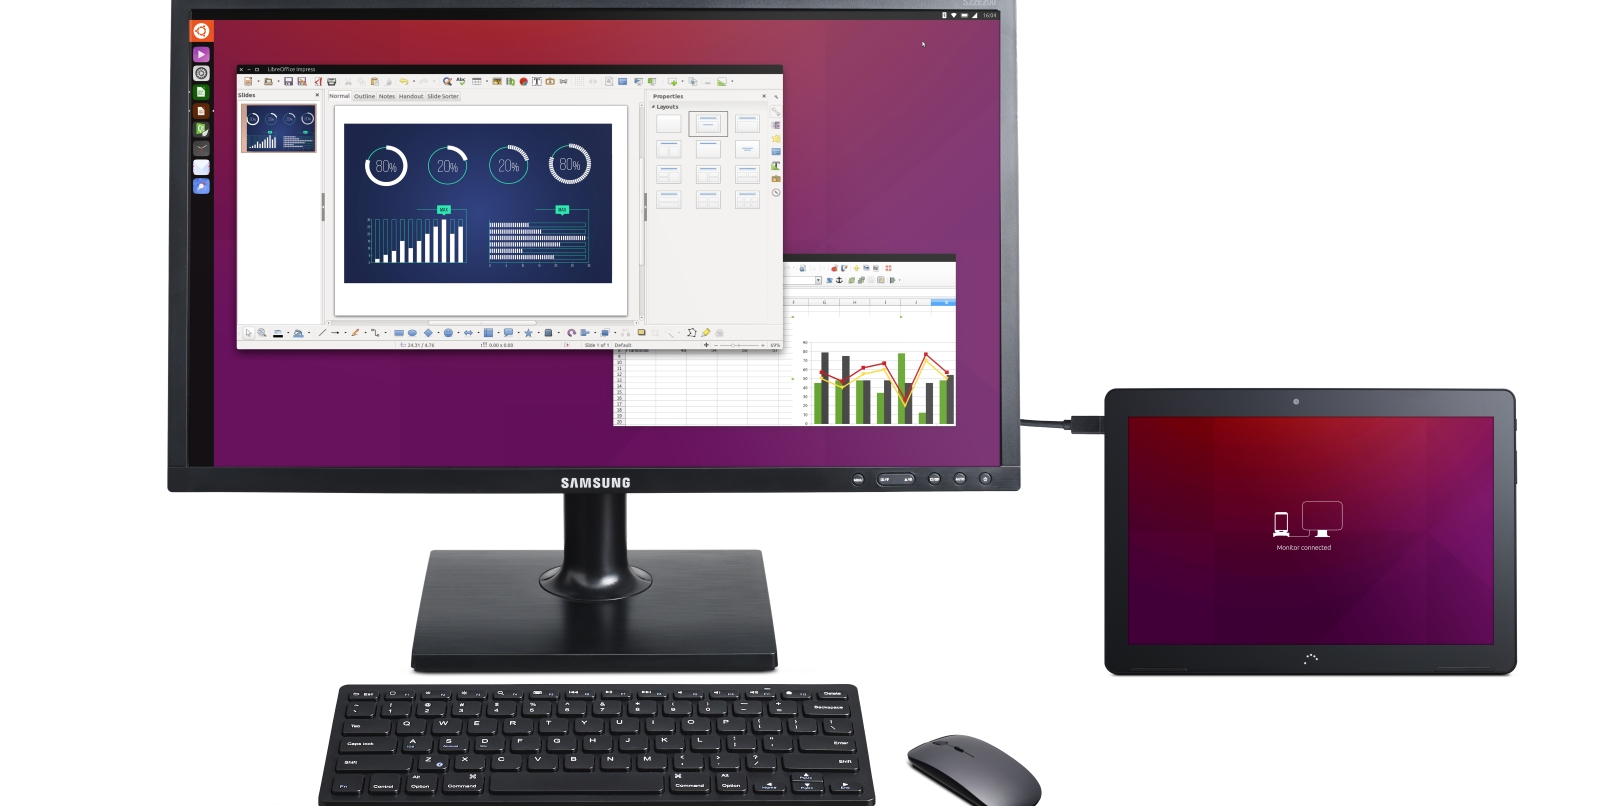 New Ubuntu tablet wants to replace your PC